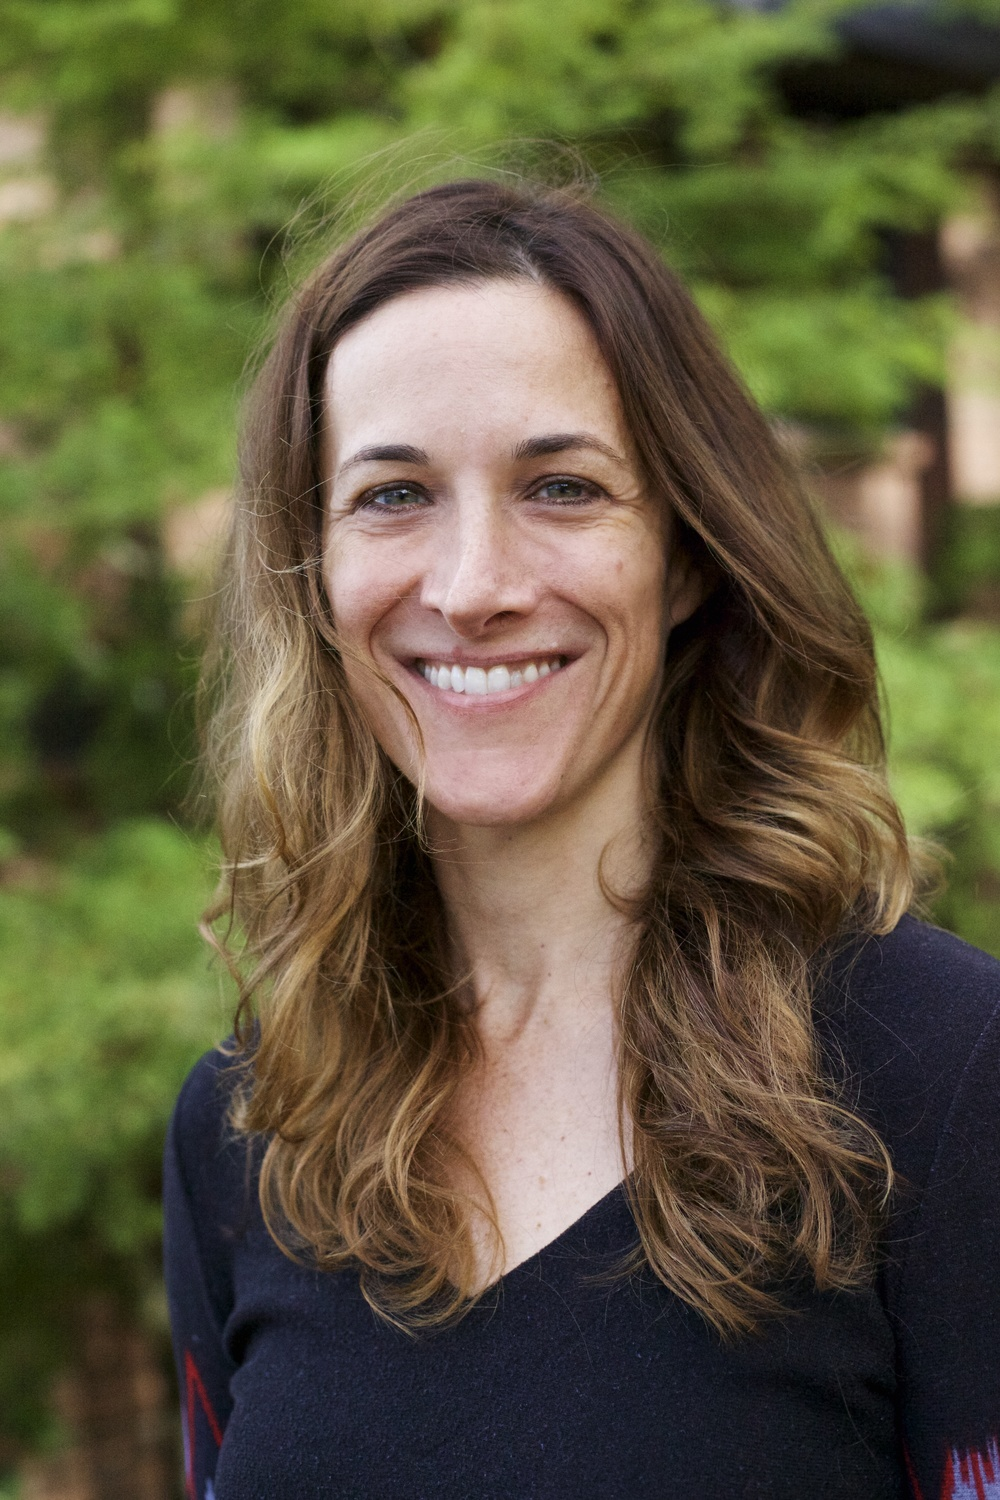 Amy Sponsler, MSW, LICSW, therapist   ∙ Adults (Ages 17 and up) ∙ Domestic Violence ∙ Grief and Loss ∙ Relationship Issues ∙ LGBTQ, sexual minorities ∙ Anxiety ∙ Depression ∙ Stress Management ∙ Trauma ∙ Codependency